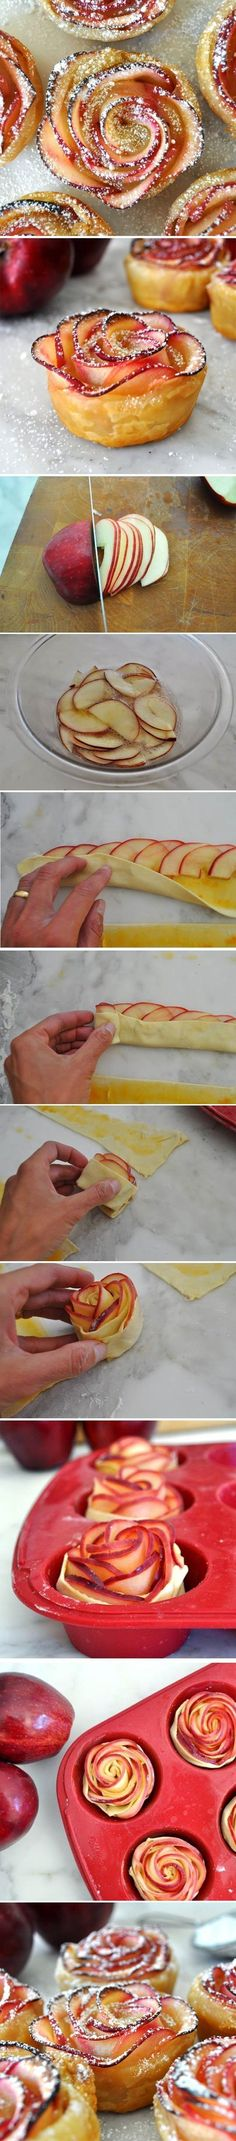 How to Make Apple Roses Beautiful and Delicious